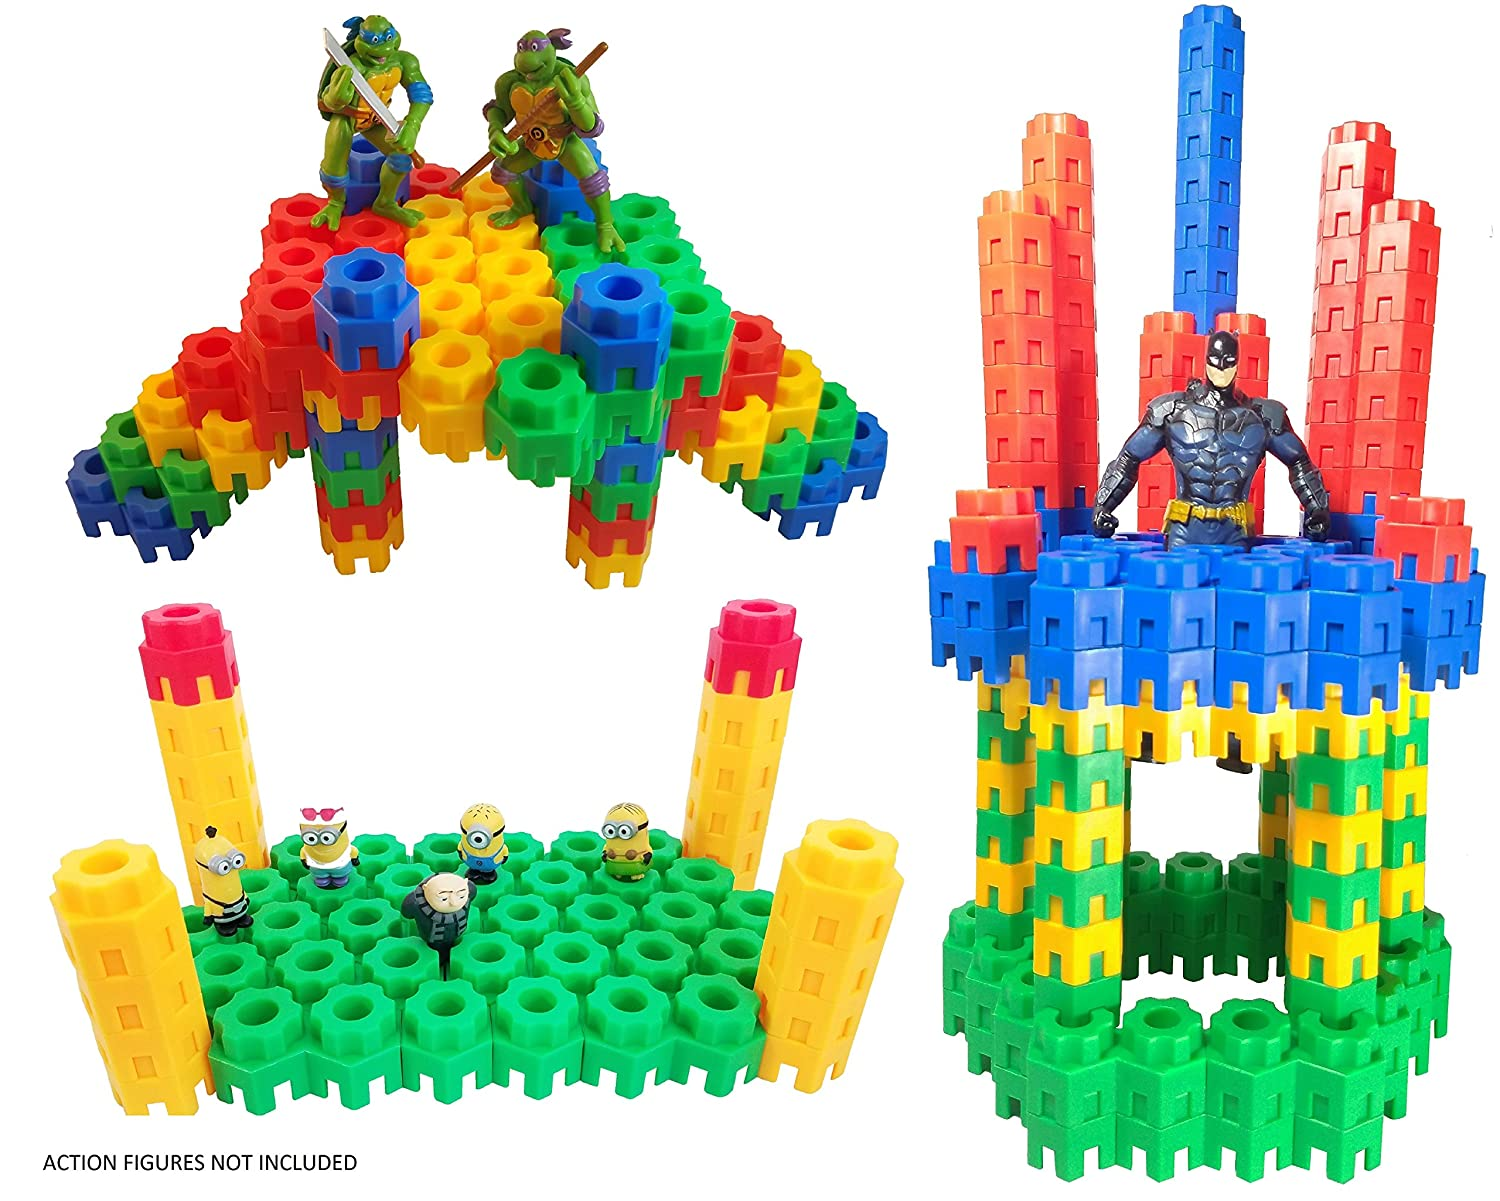 d2bcd723680 Amazon.com  Building Toys For Kids 144 Pcs Set - STEM Educational  Construction Toys - Building Blocks For Kids 3+ Best Toy Blocks Gift For  Boys and Girls ...